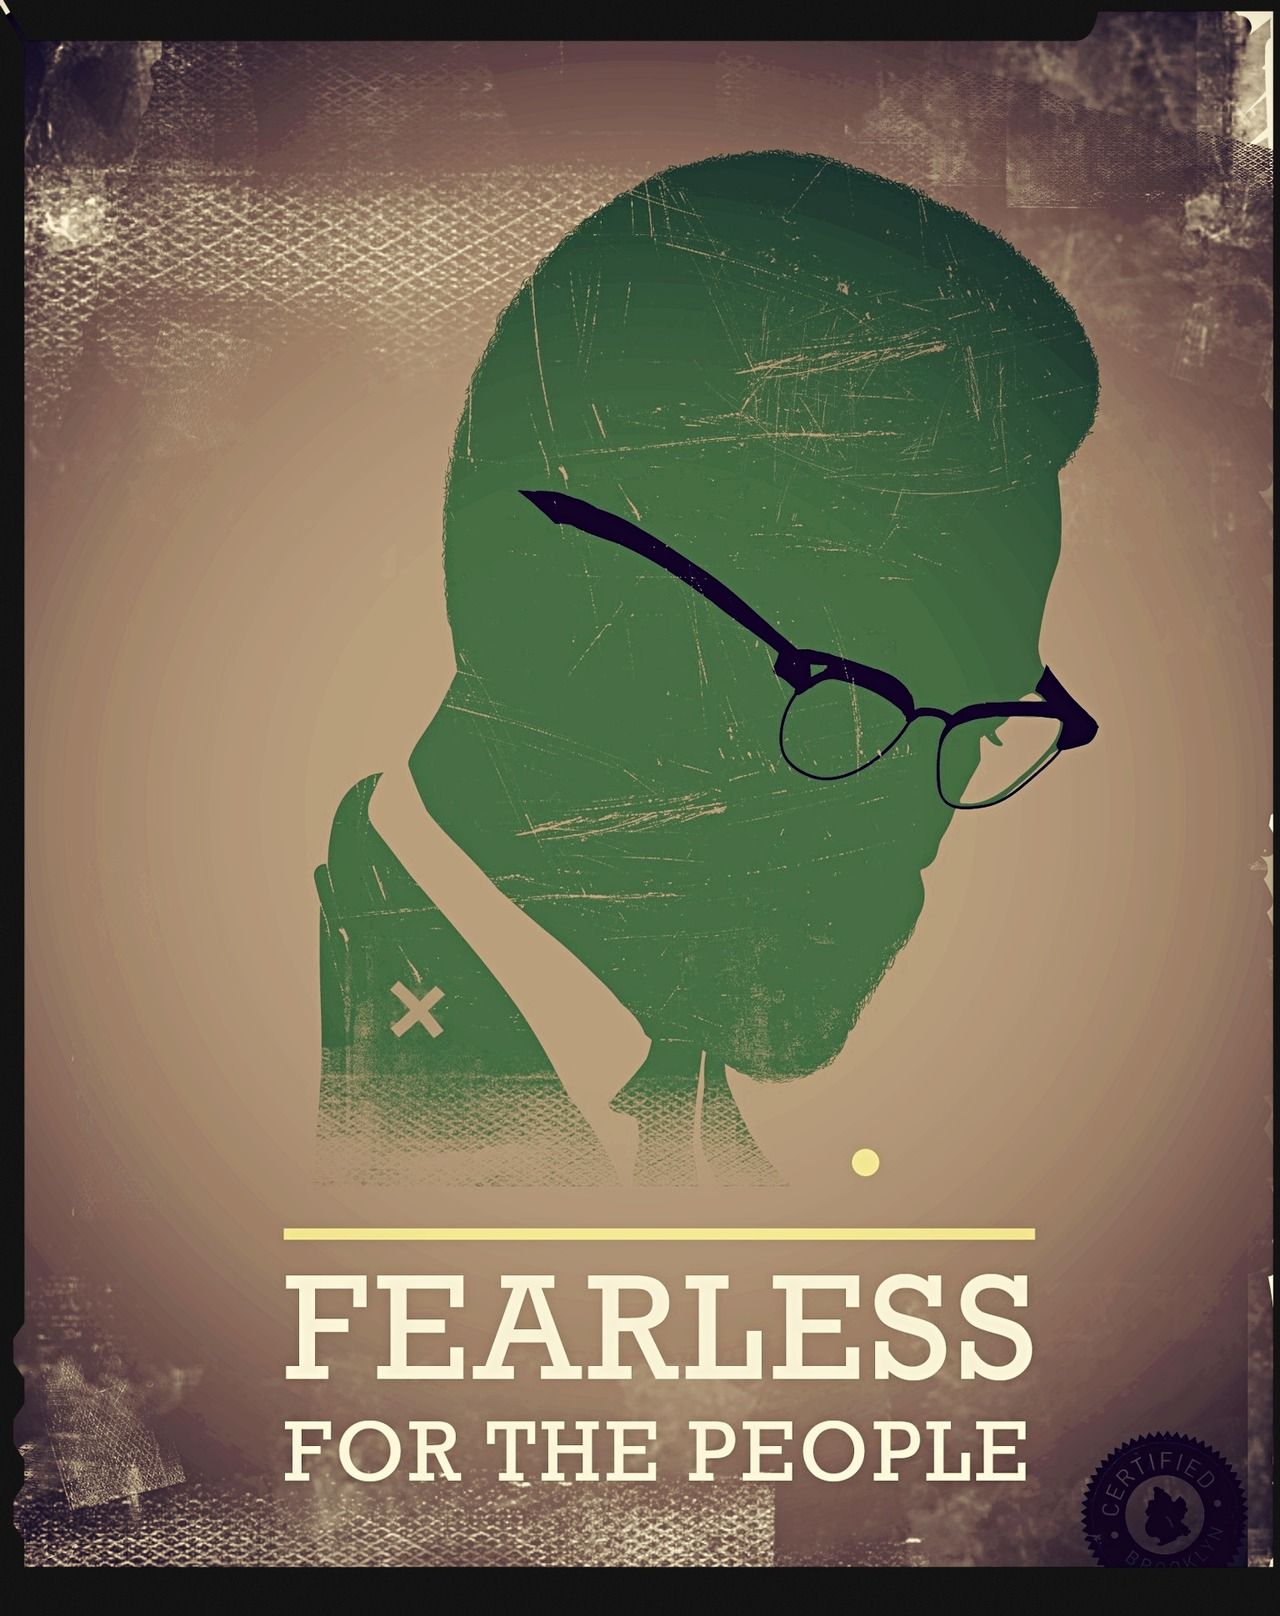 Fearless for the People #peppersearching #pepper #photos #MalcomX #ElHajjMalikElShabazz #islam